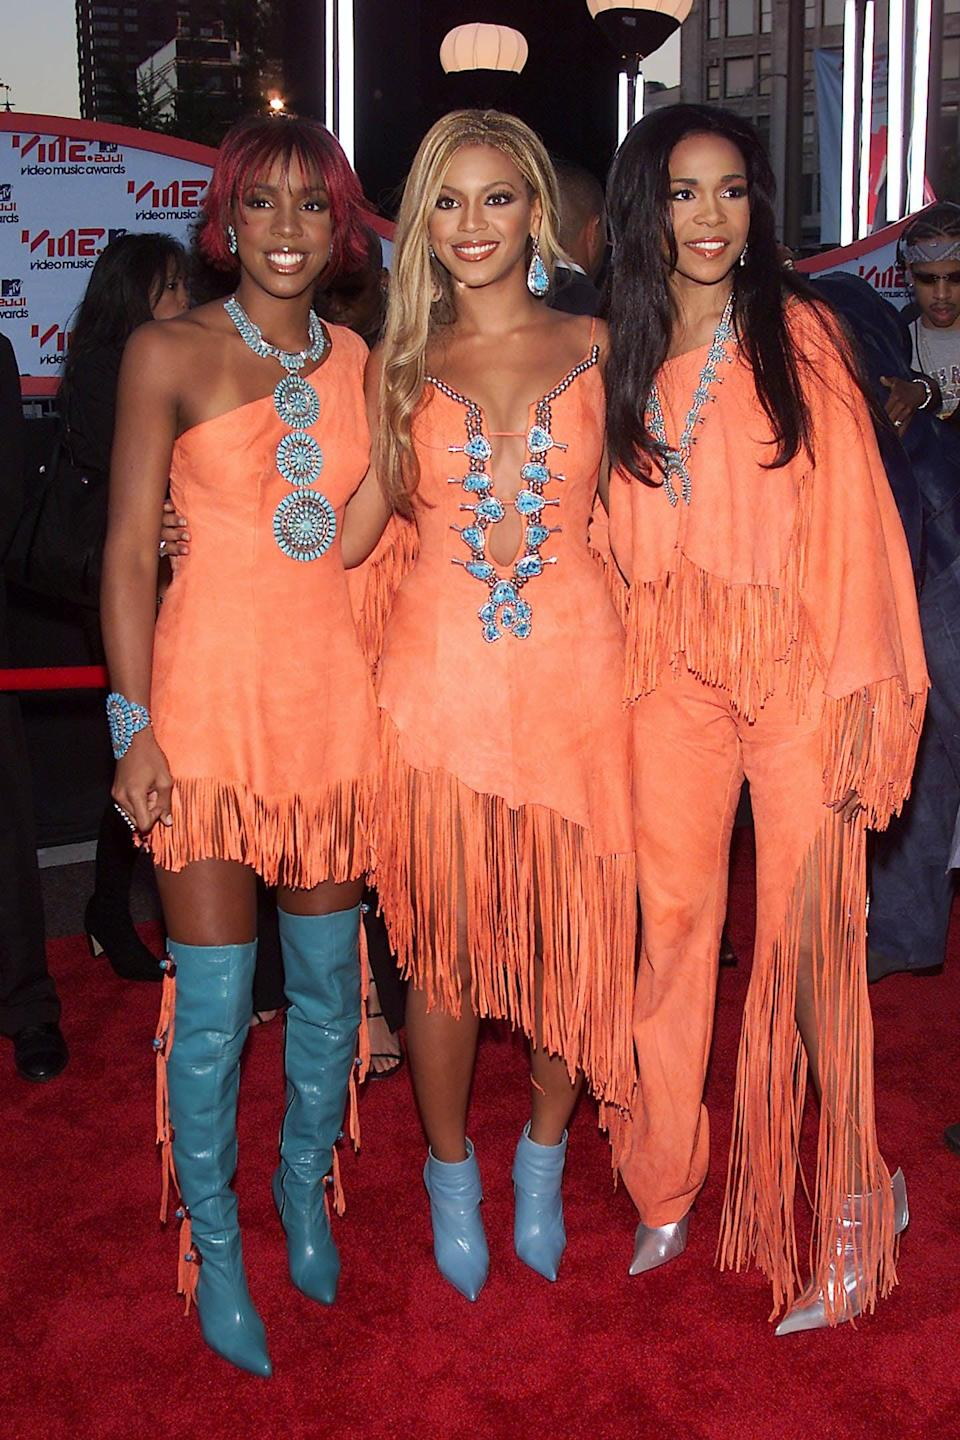 <p>Rocking orange and turqouise fringed outfits at the 2001 MTV Video Music Awards.</p>